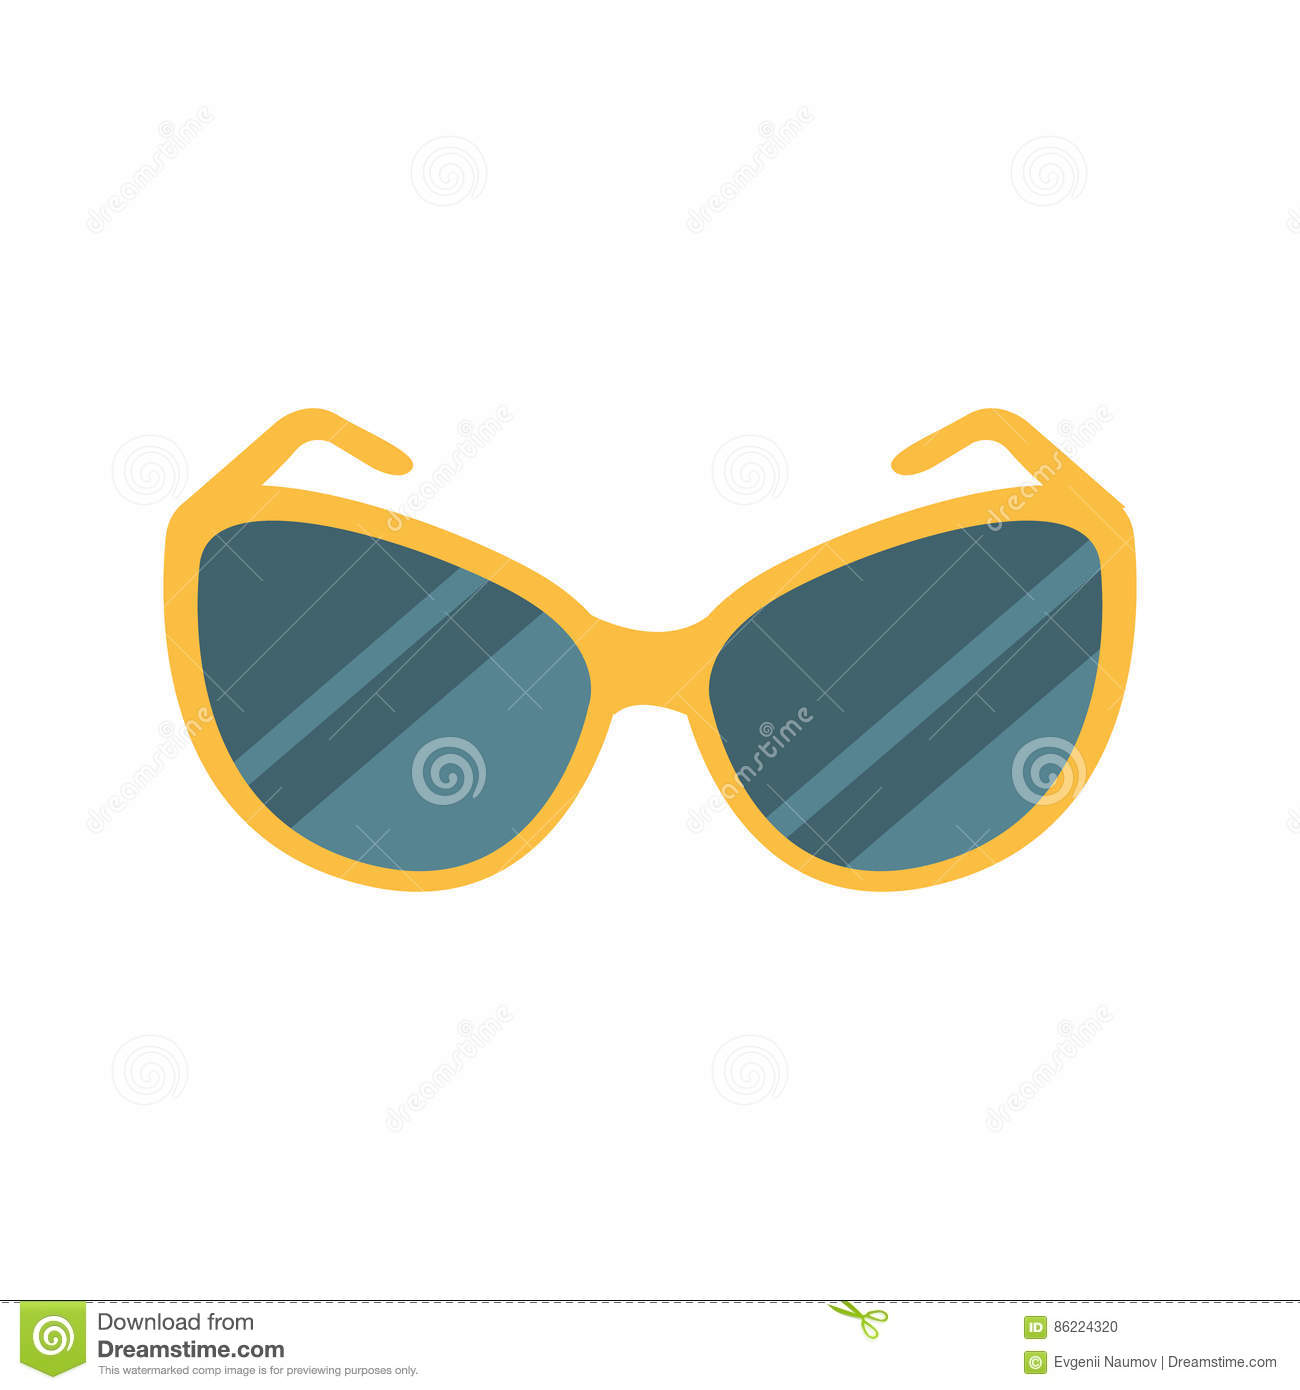 Stylish Dark Shades Eye Protection Against Sun Accessory, Part Of Summer Beach Vacation Series Of Illustrations